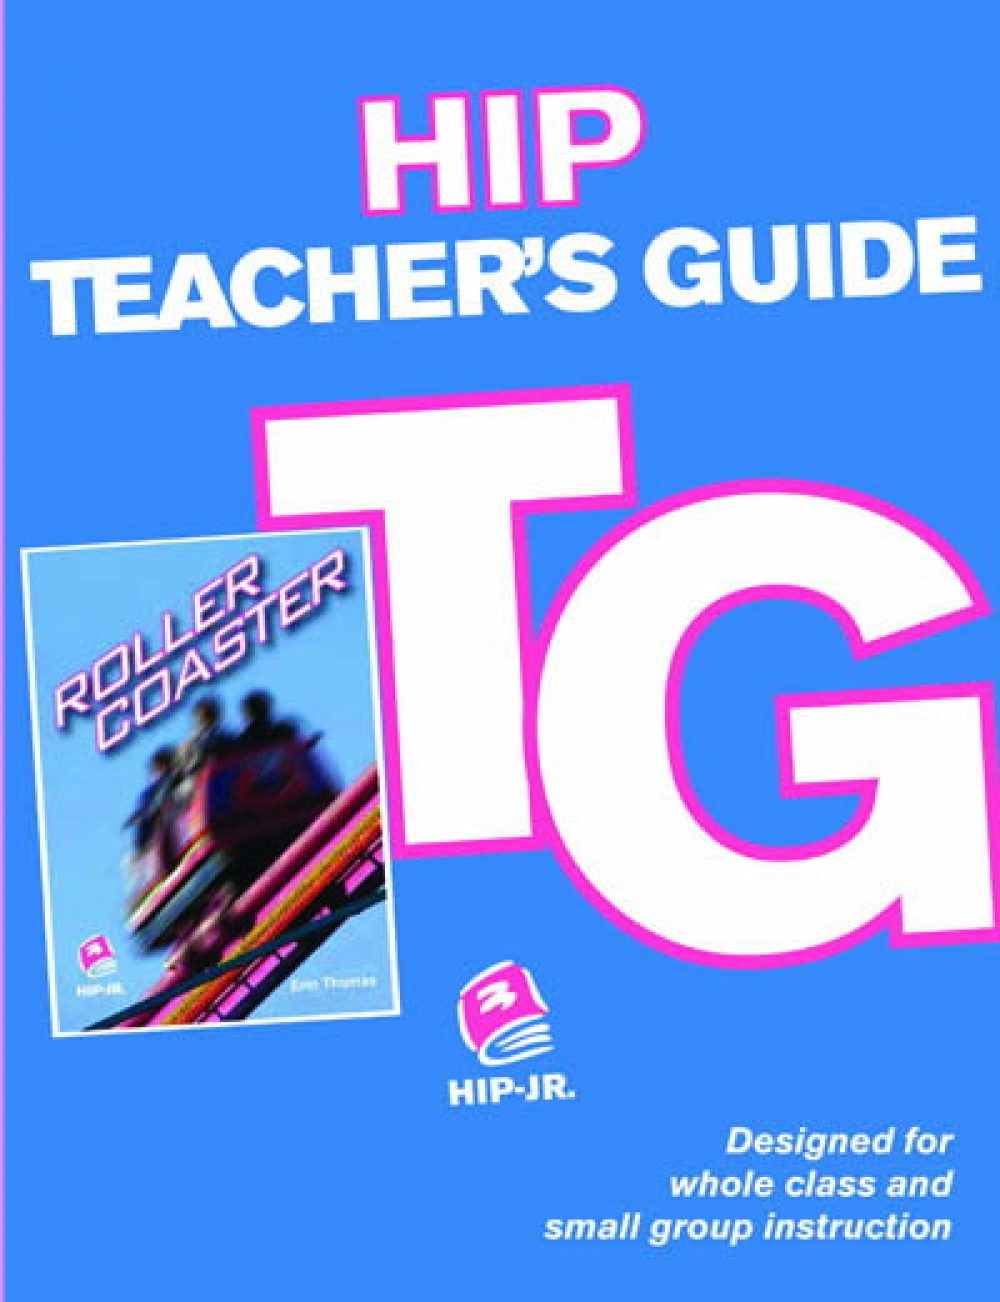 Roller Coaster Teacher's Guide